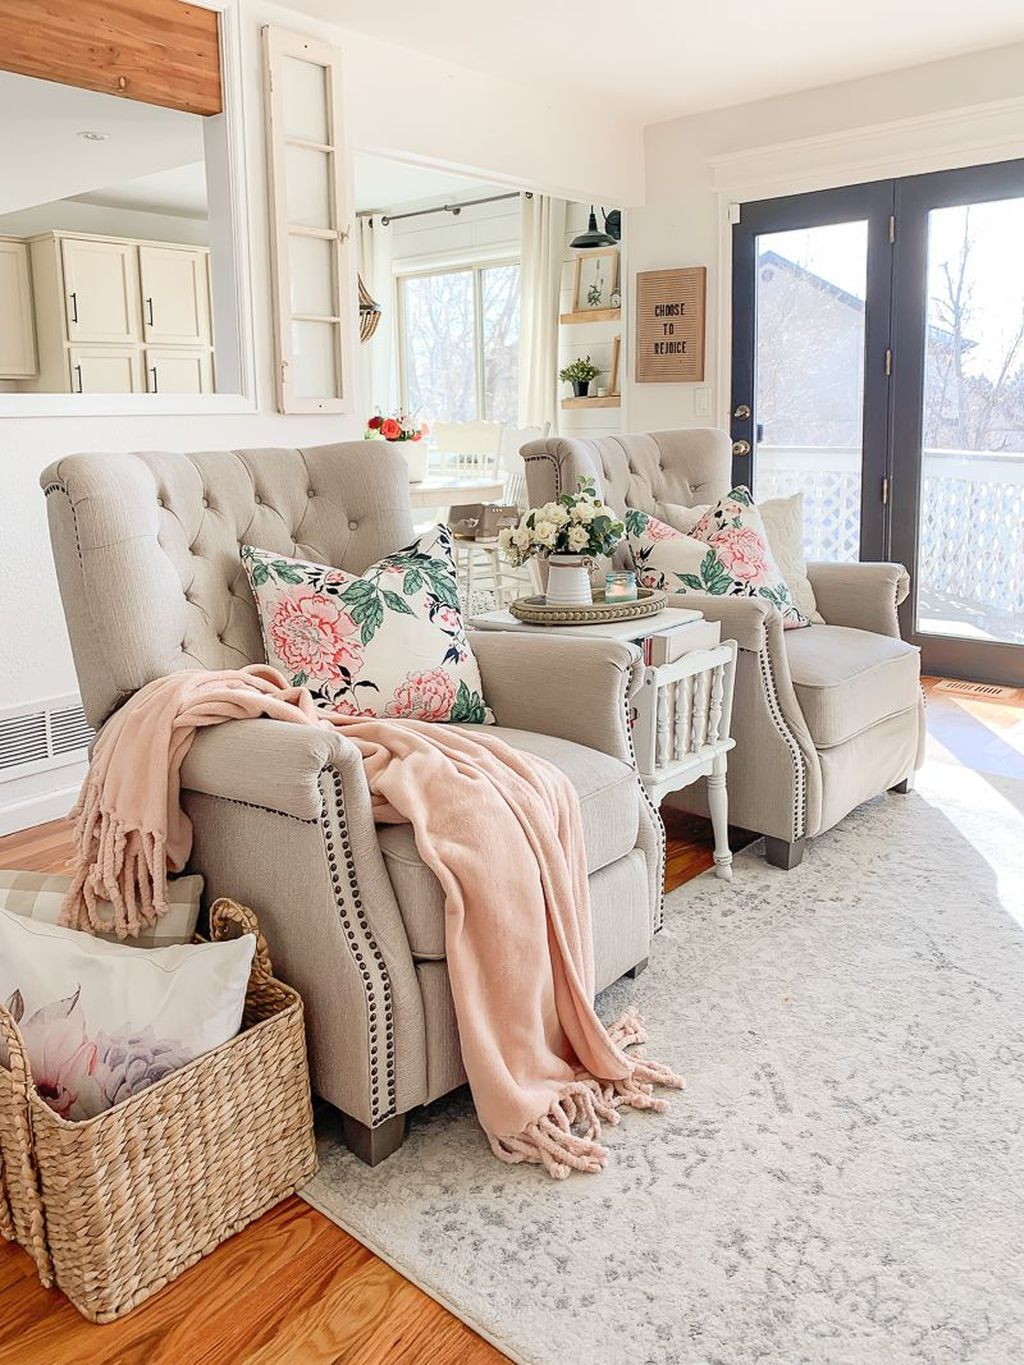 Awesome Spring Interior Decor Ideas That You Should Copy 01